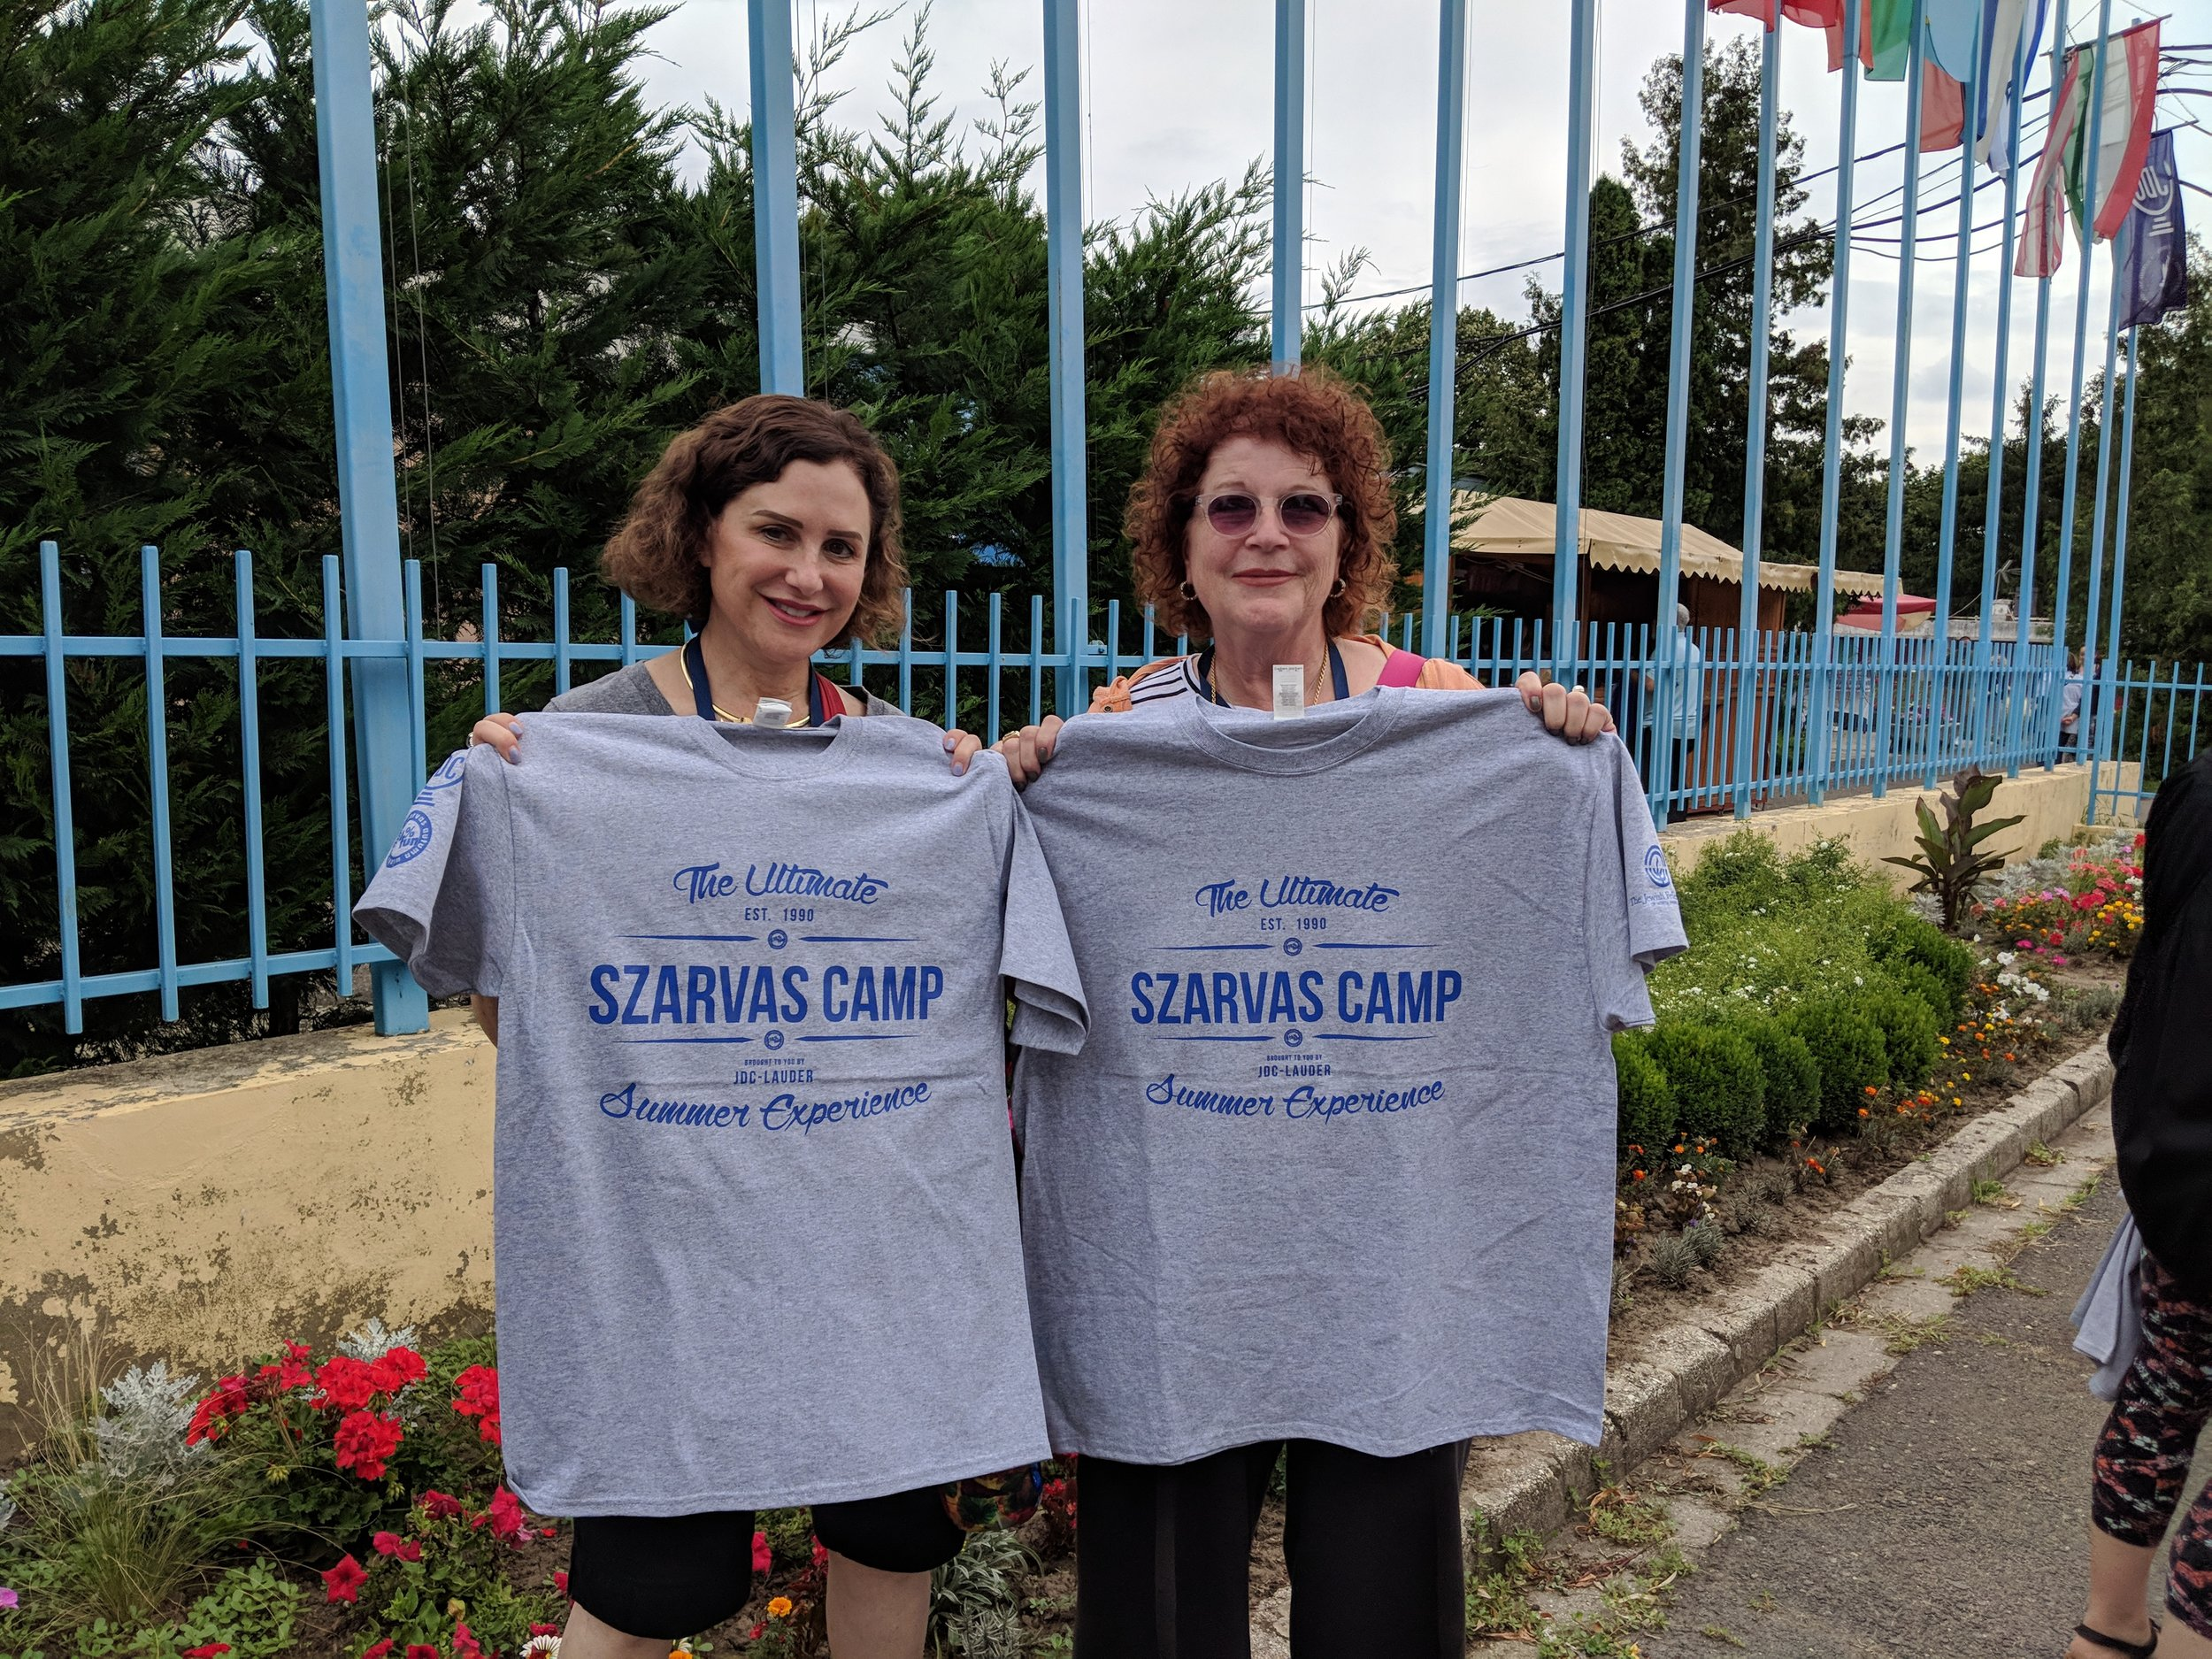 The extraordinary Svarvas Camp, Hungary